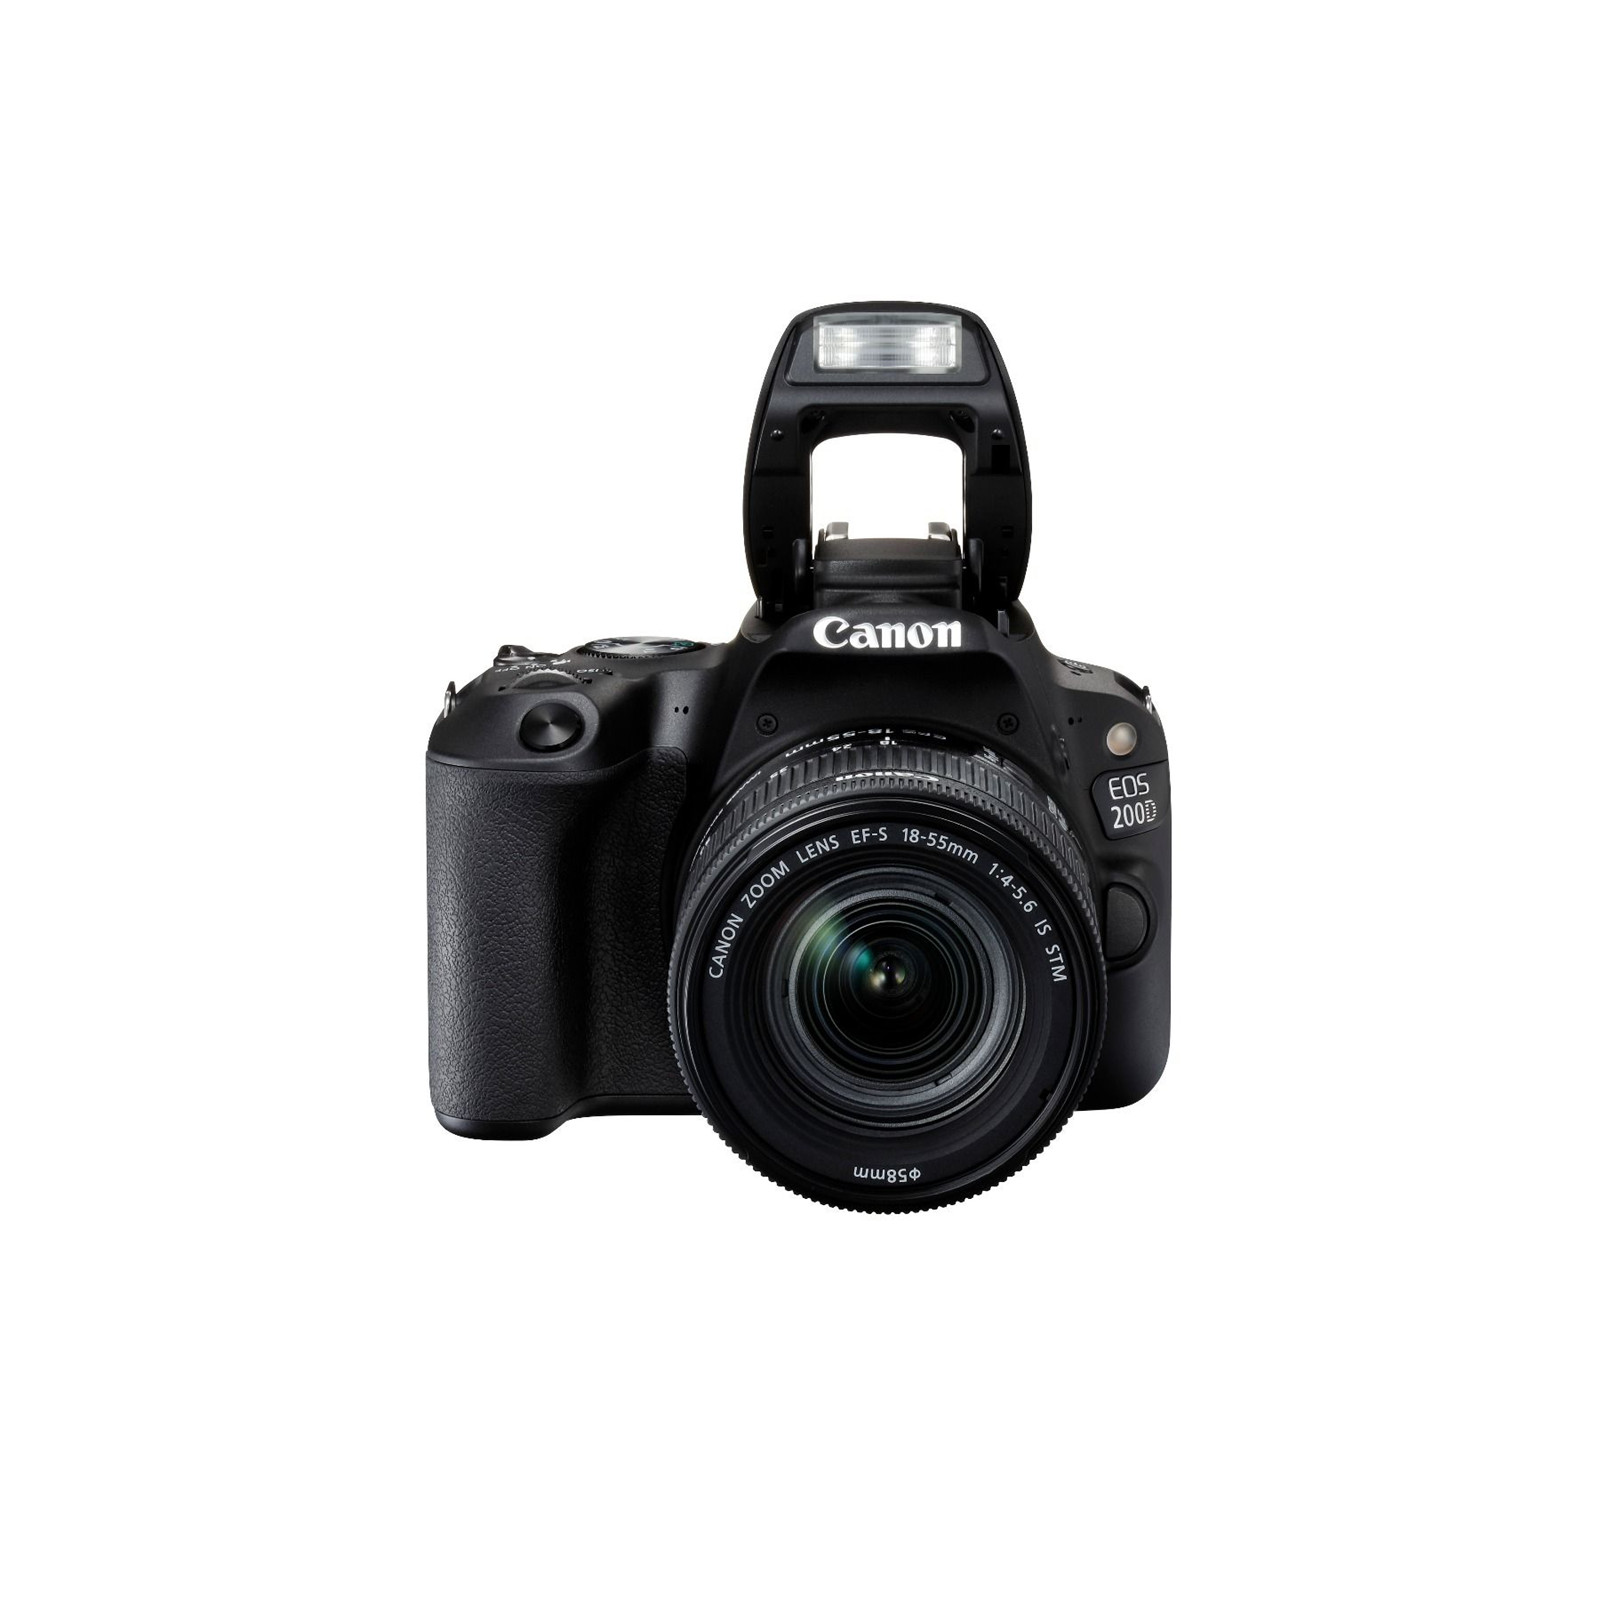 Buy The Canon Eos 200d Digital Slr Camera W Ef S 18 55mm F 35 56 Tripot Mini Universal Monopod Kamera Dslr Gopro Hp Youtubers Is Stm Lens Kit Approx 2420 Megapixels Cmos Sensor 3 Inch Lcd World Smallest And